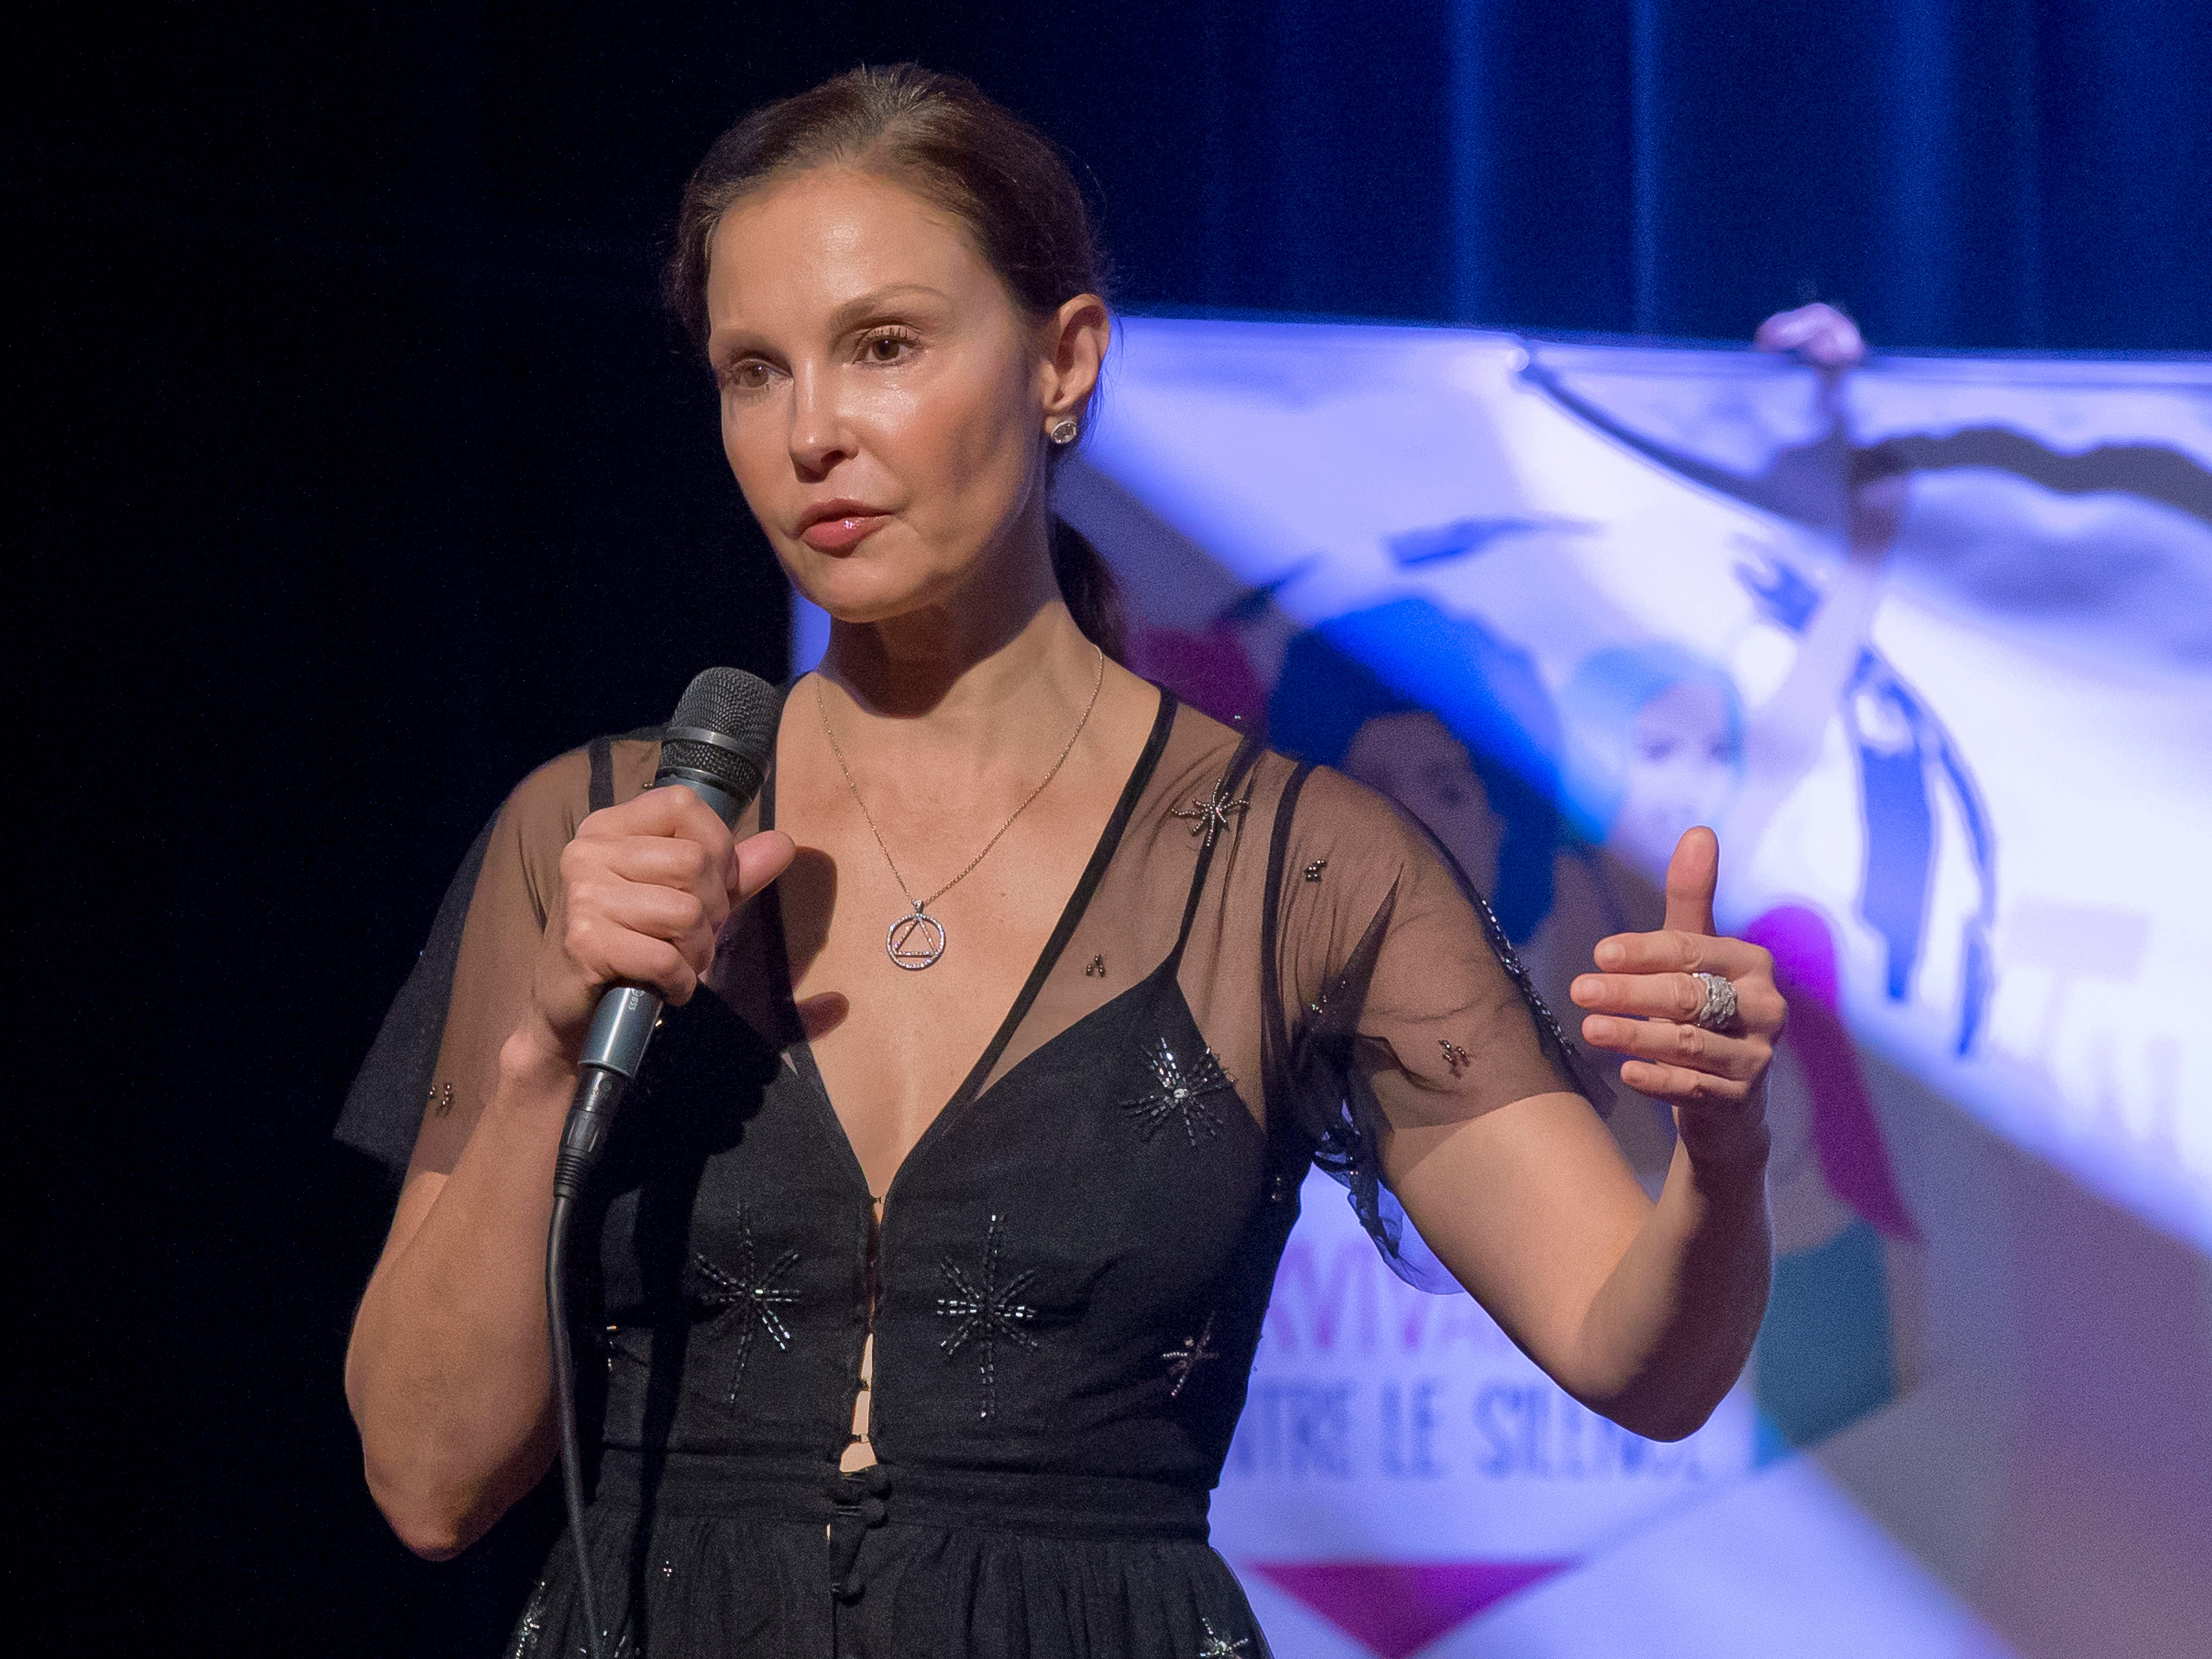 Civility: American actress Ashley Judd gestures as she speaks during a conference about the violence of prostitution in Paris, France, Friday, Nov. 23, 2018.